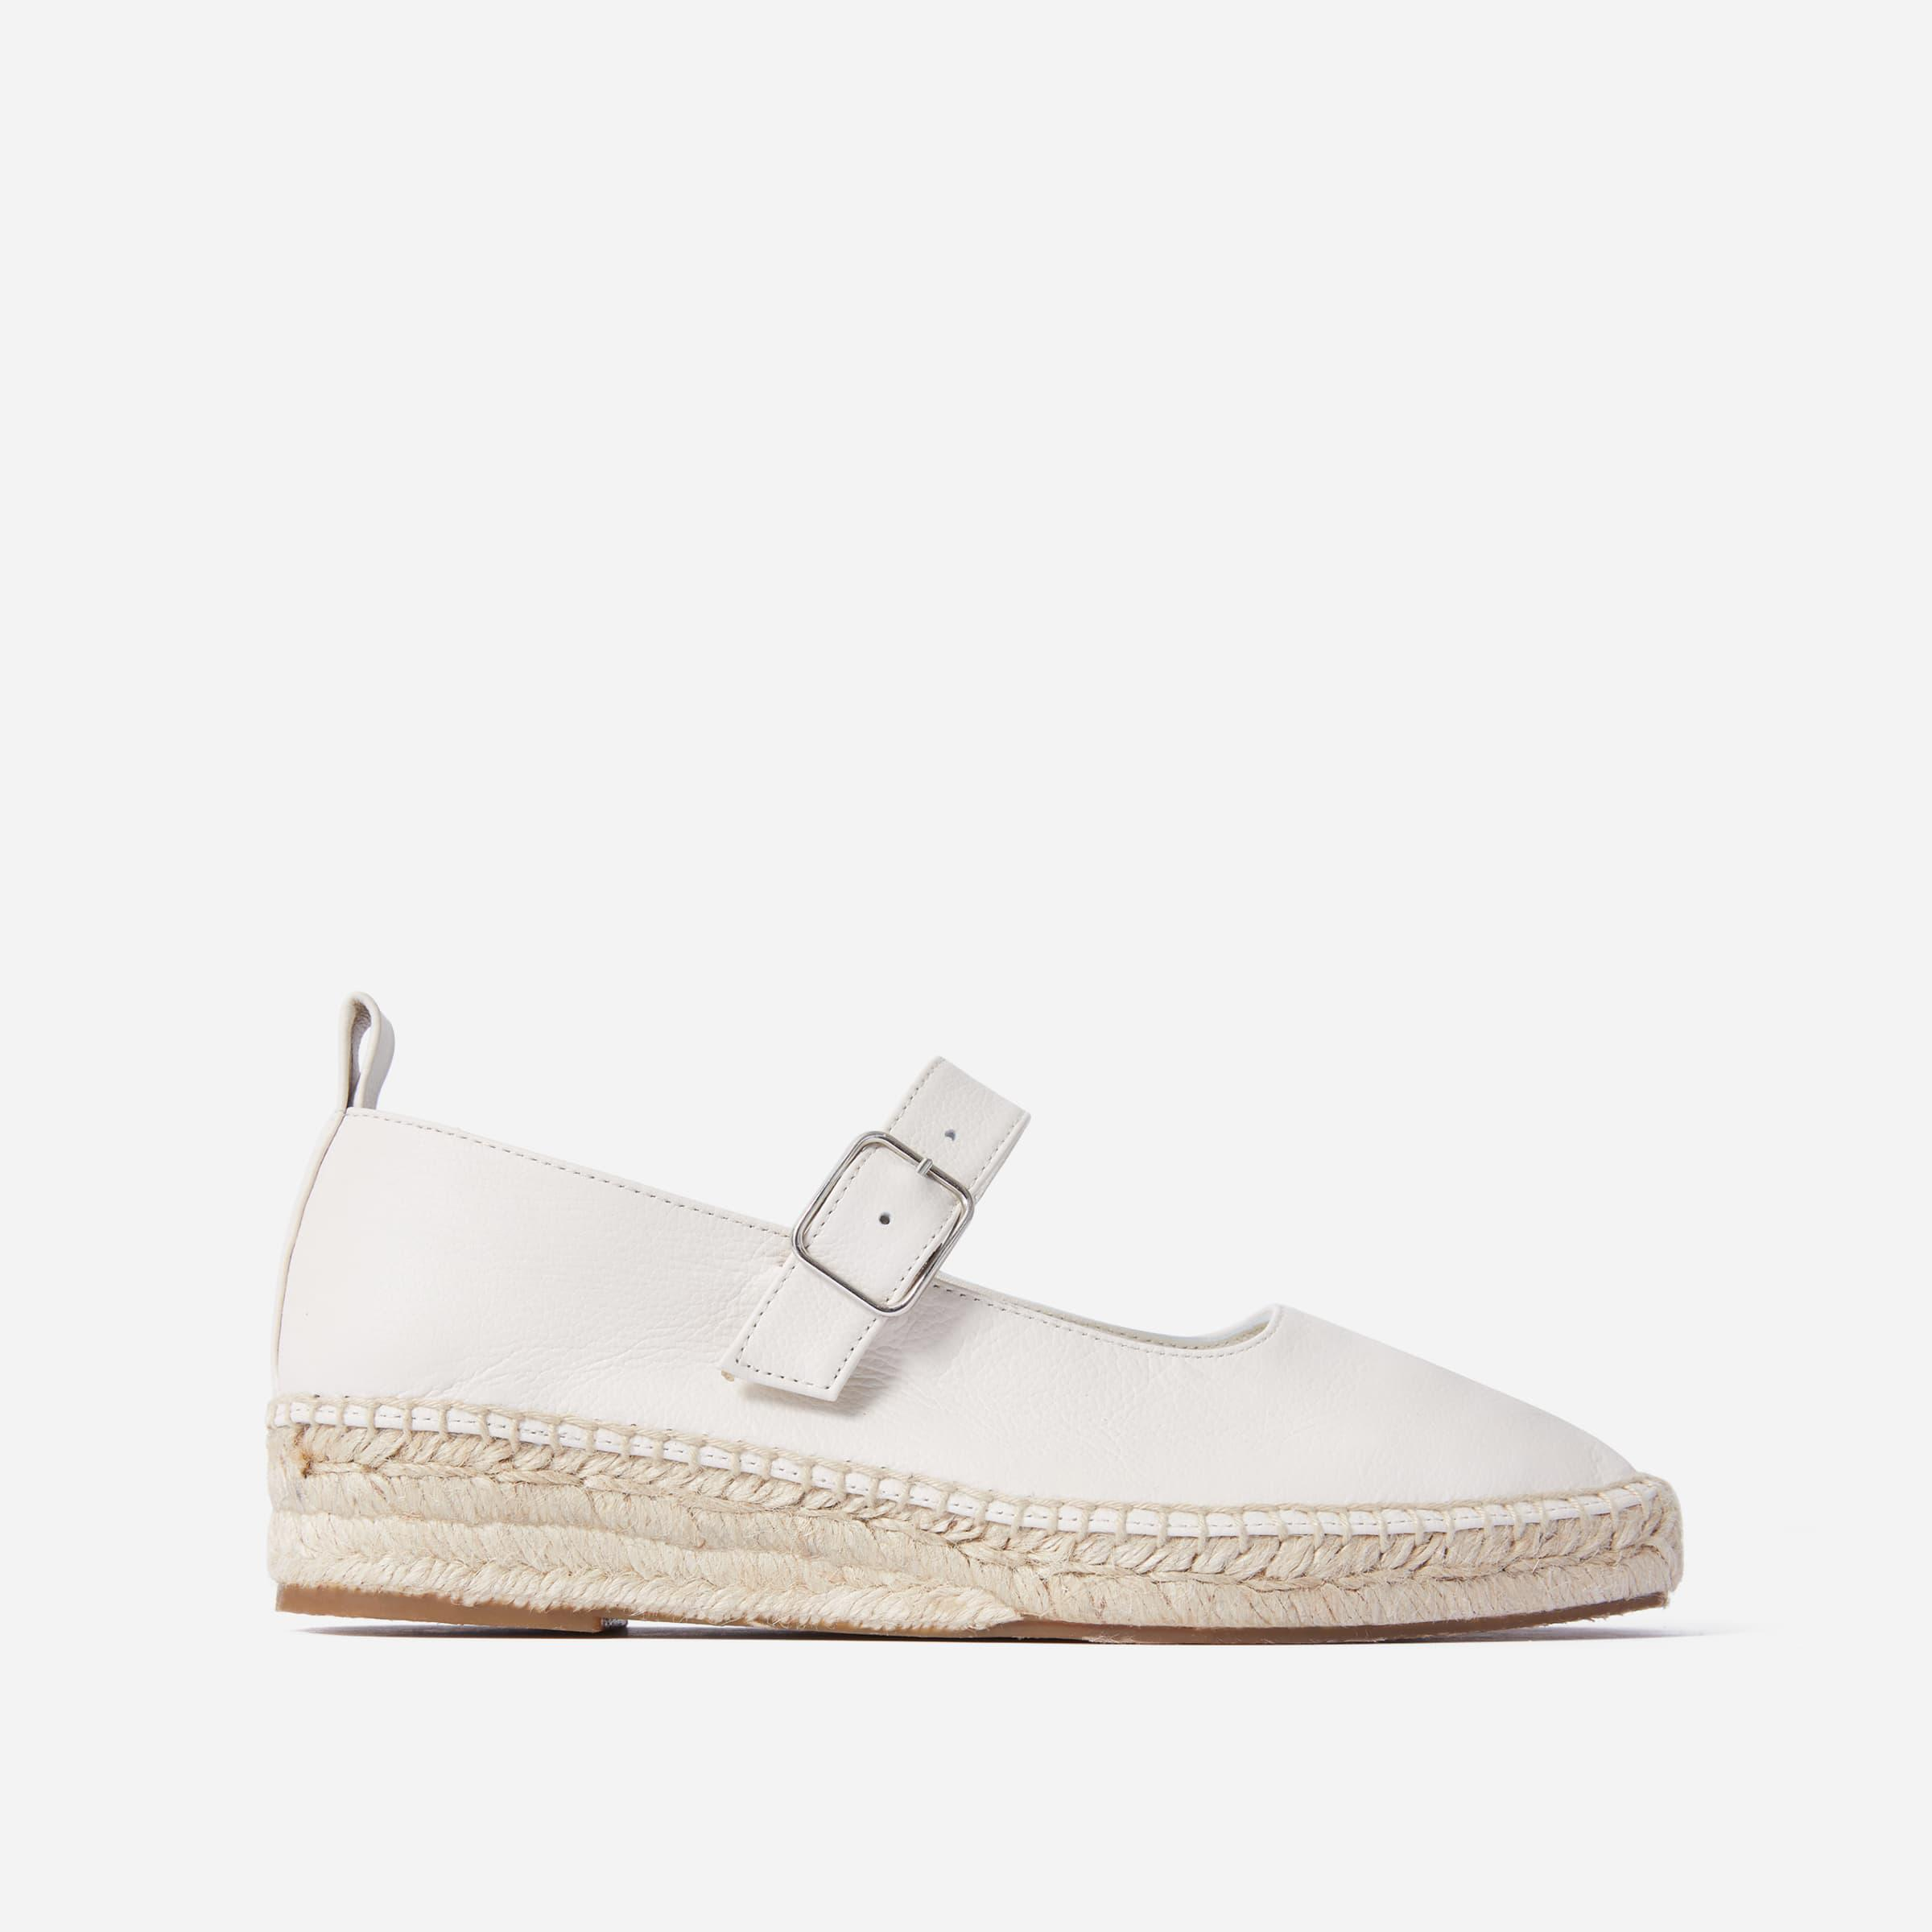 The Mary Jane Espadrille